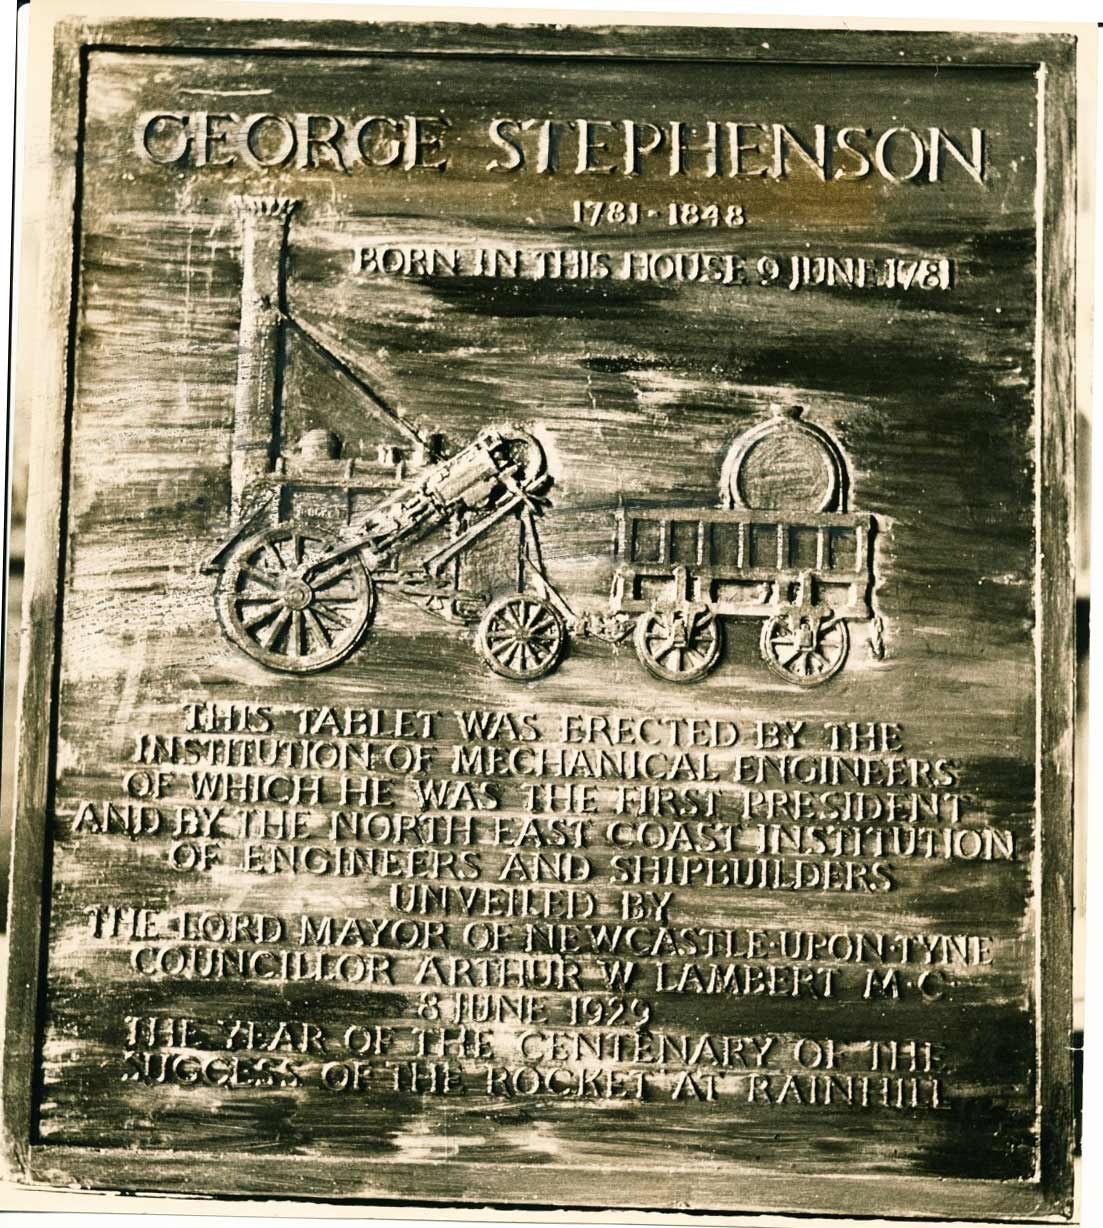 Plaque fixed to George Stephenson's birthplace